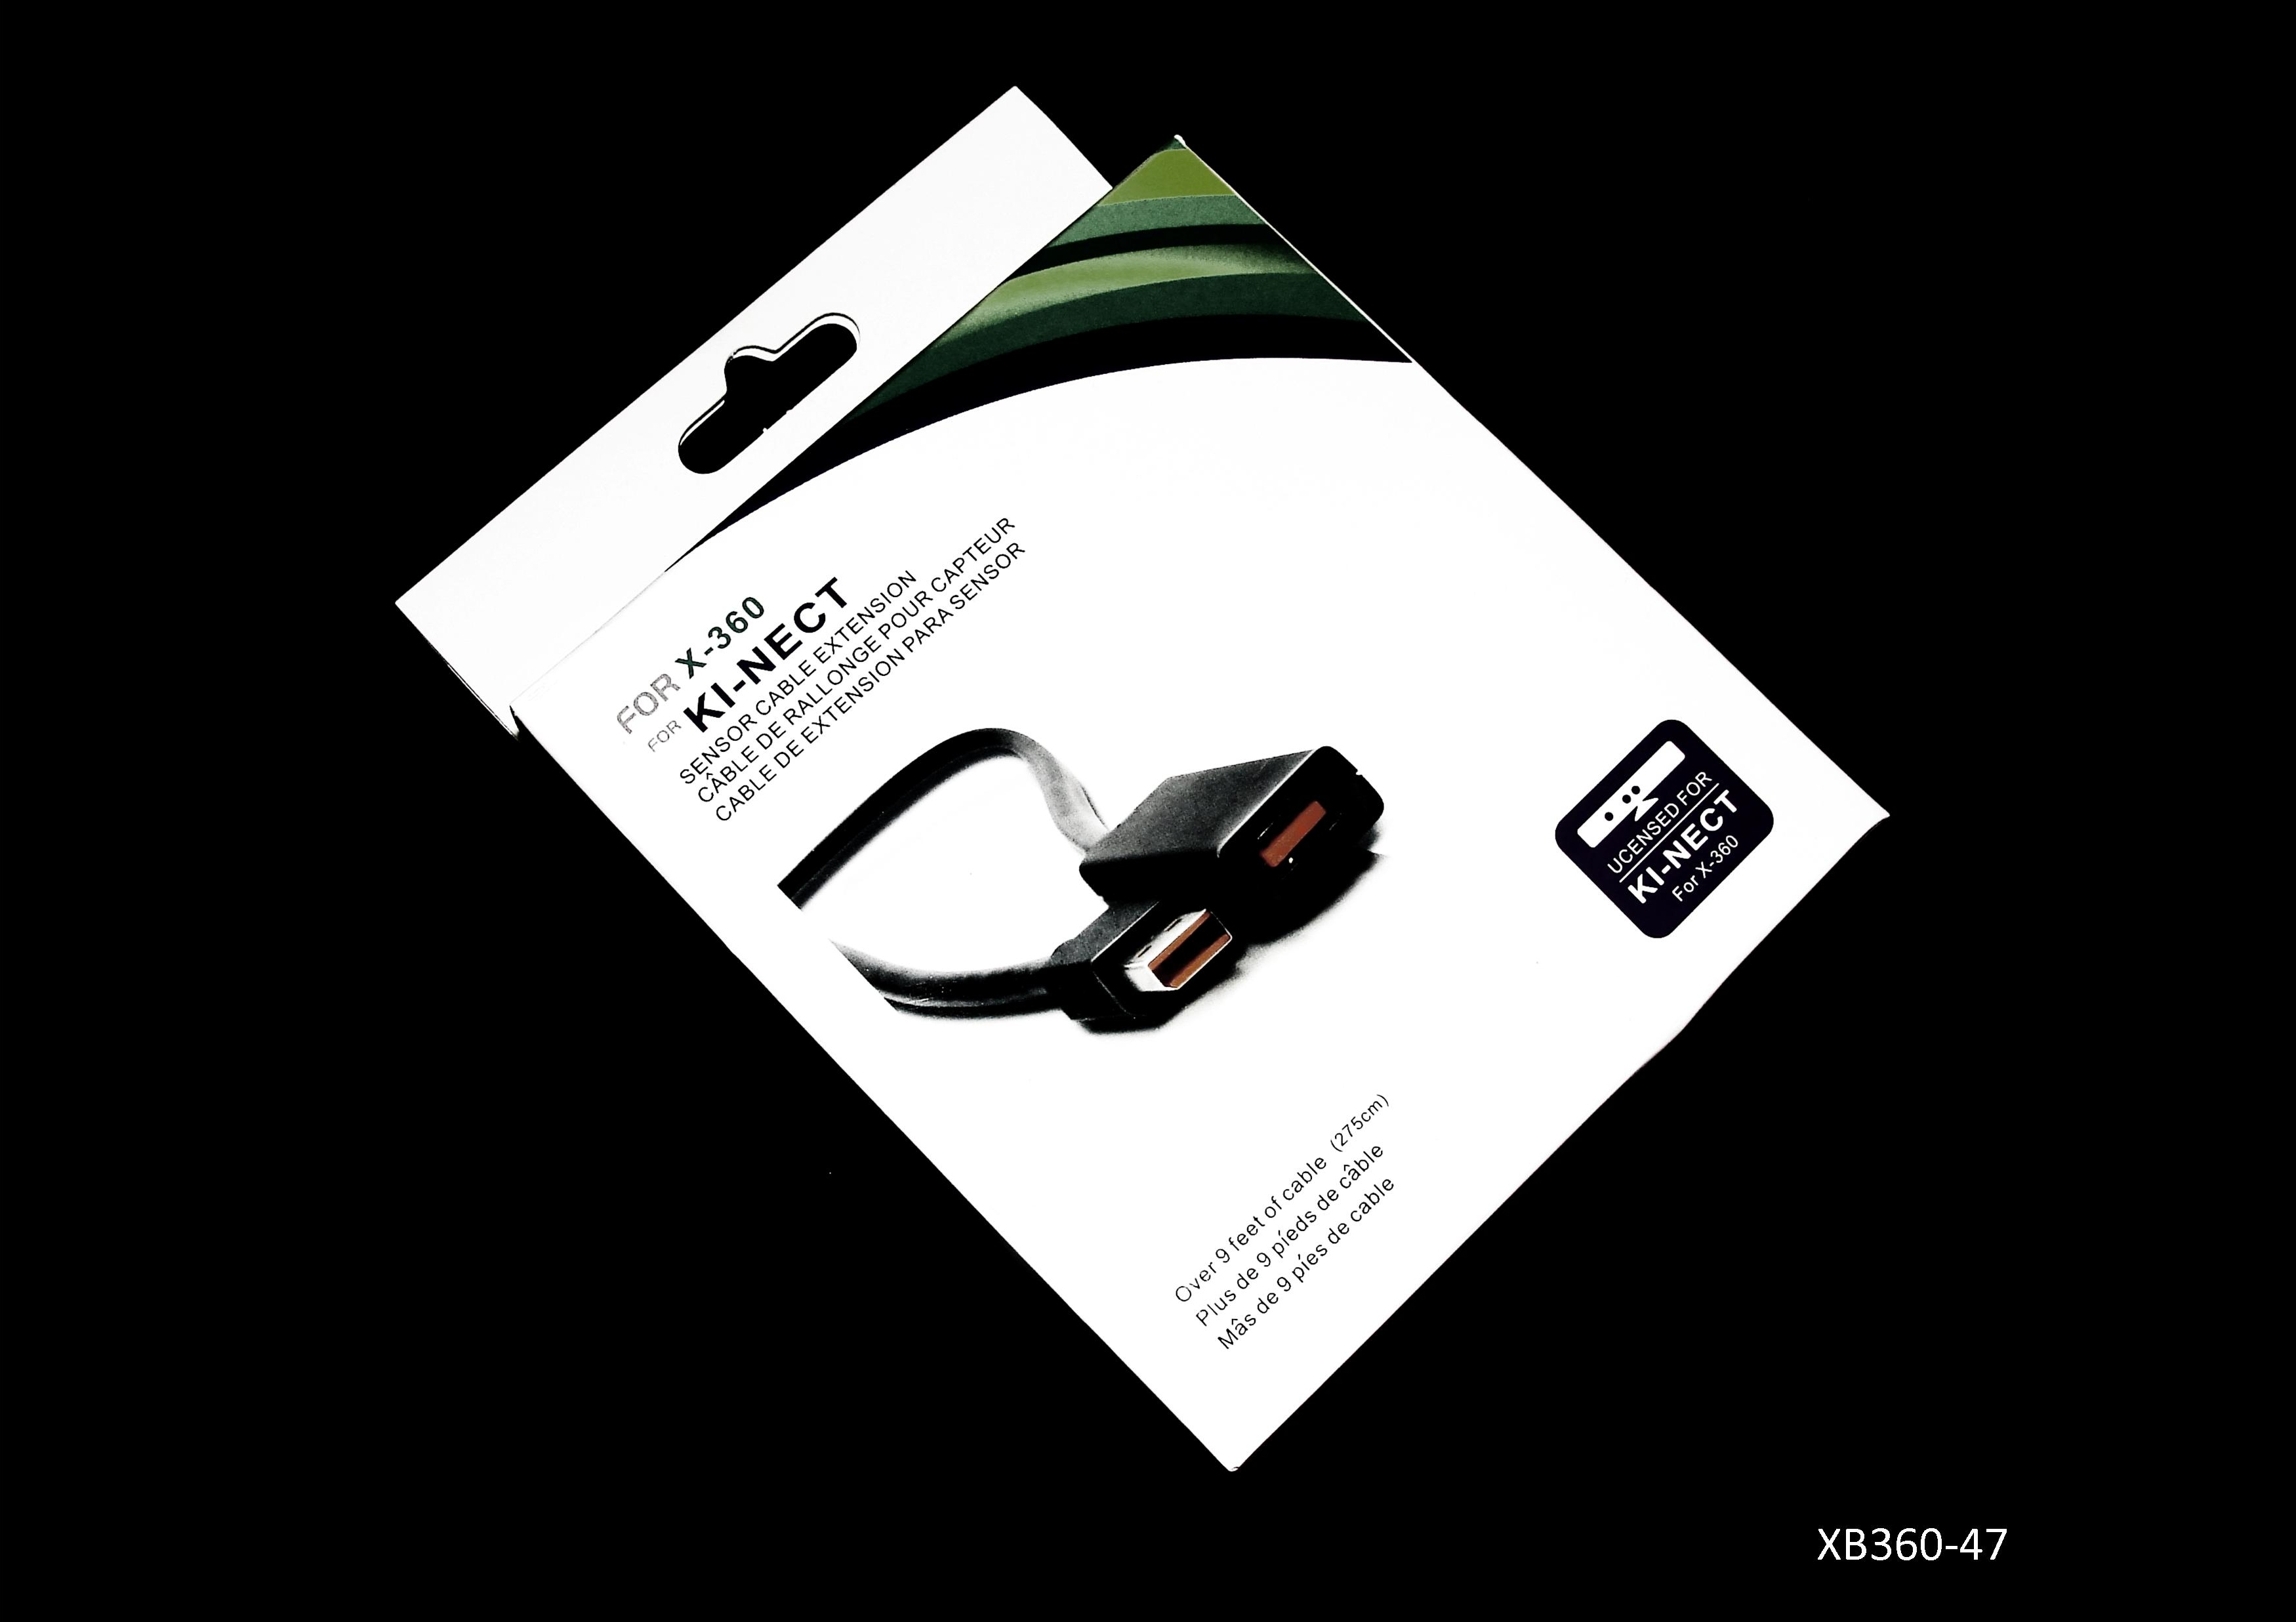 Product Photo/Kinect Extension Cable Lead Wire for Microsoft Xbox 360/Click to view.